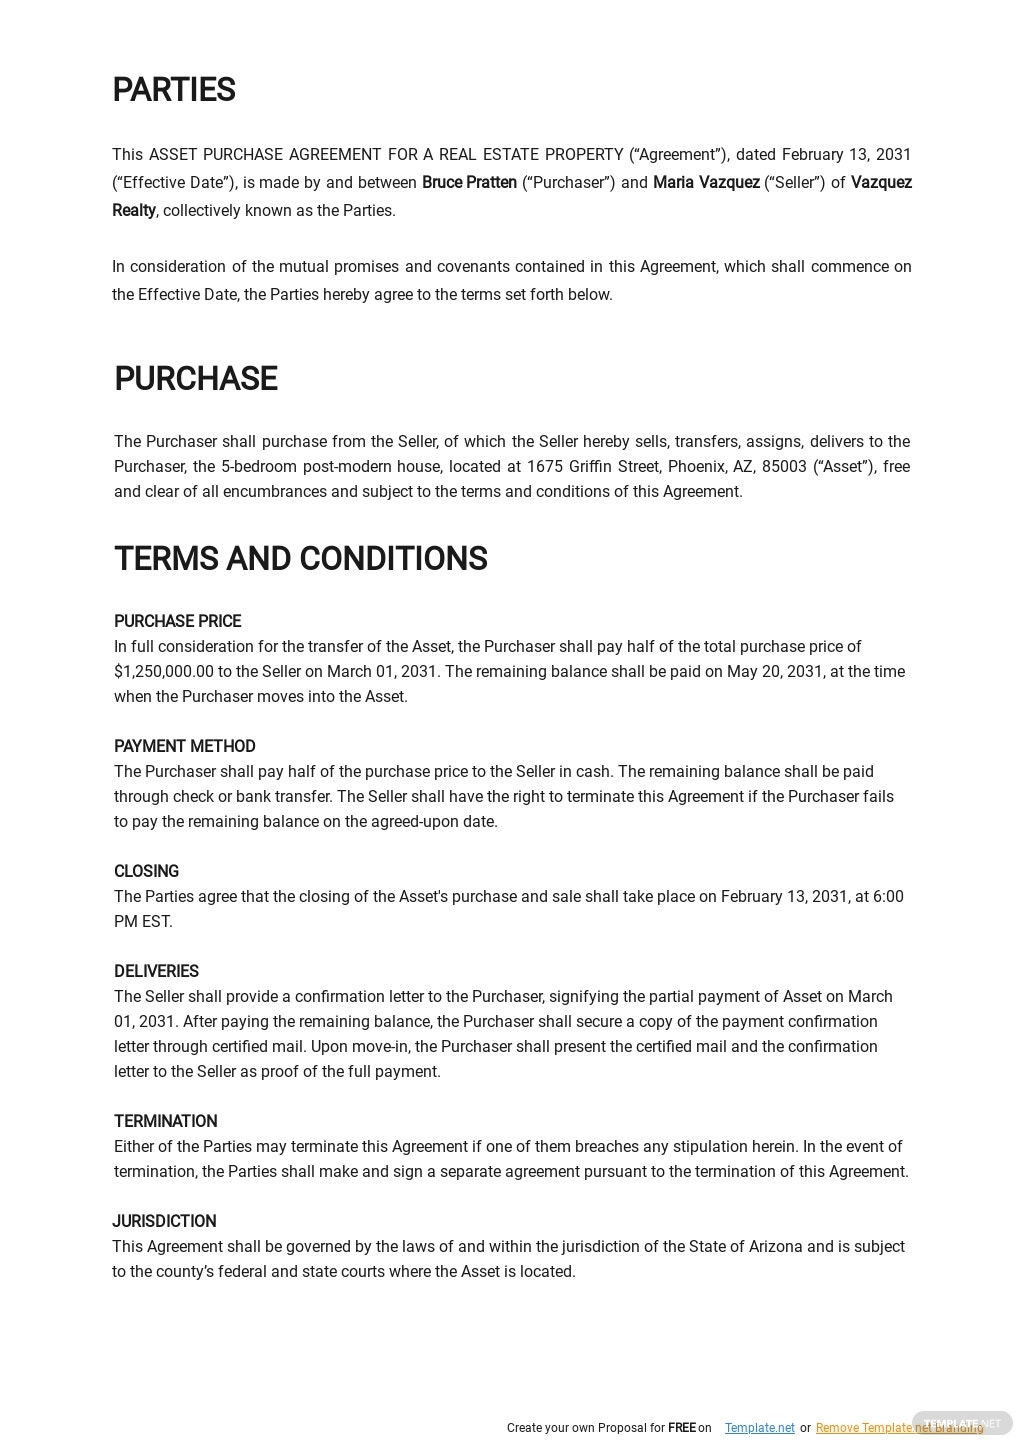 Asset Purchase Agreement For a Real Estate Property Template 1.jpe